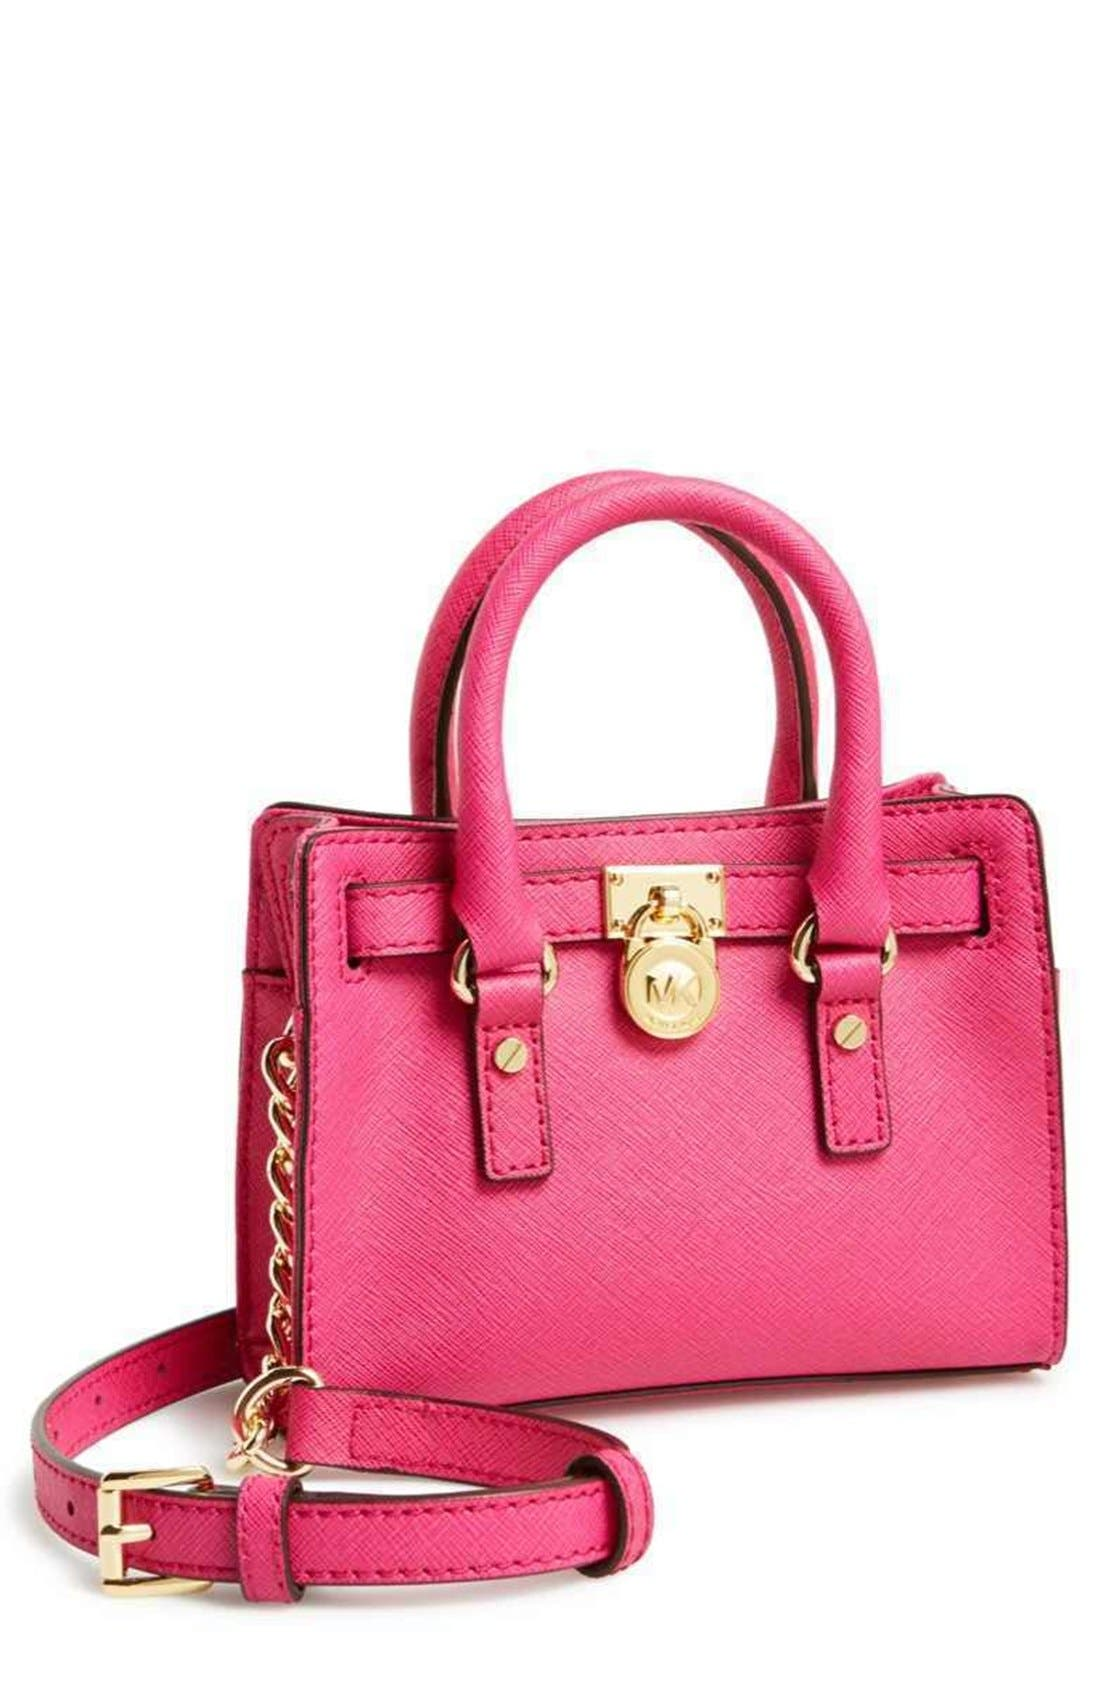 Alternate Image 1 Selected - MICHAEL Michael Kors 'Hamilton - Mini' Leather Messenger Bag